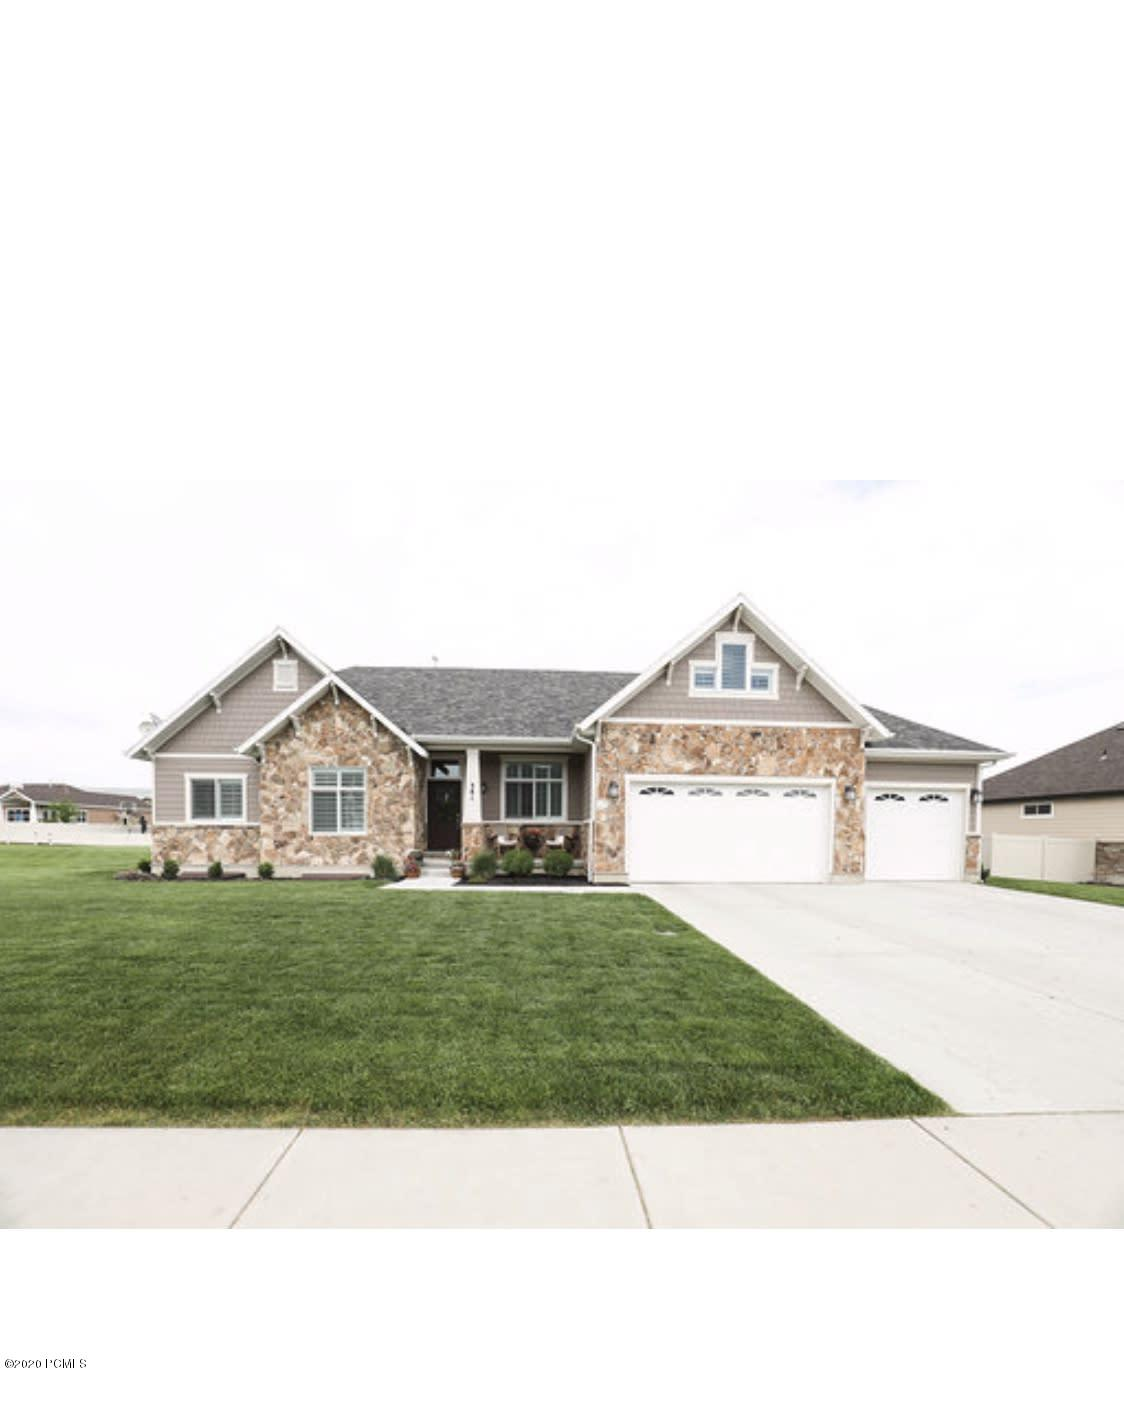 381 360, Midway, Utah 84049, 3 Bedrooms Bedrooms, ,2 BathroomsBathrooms,Single Family,For Sale,360,12002718